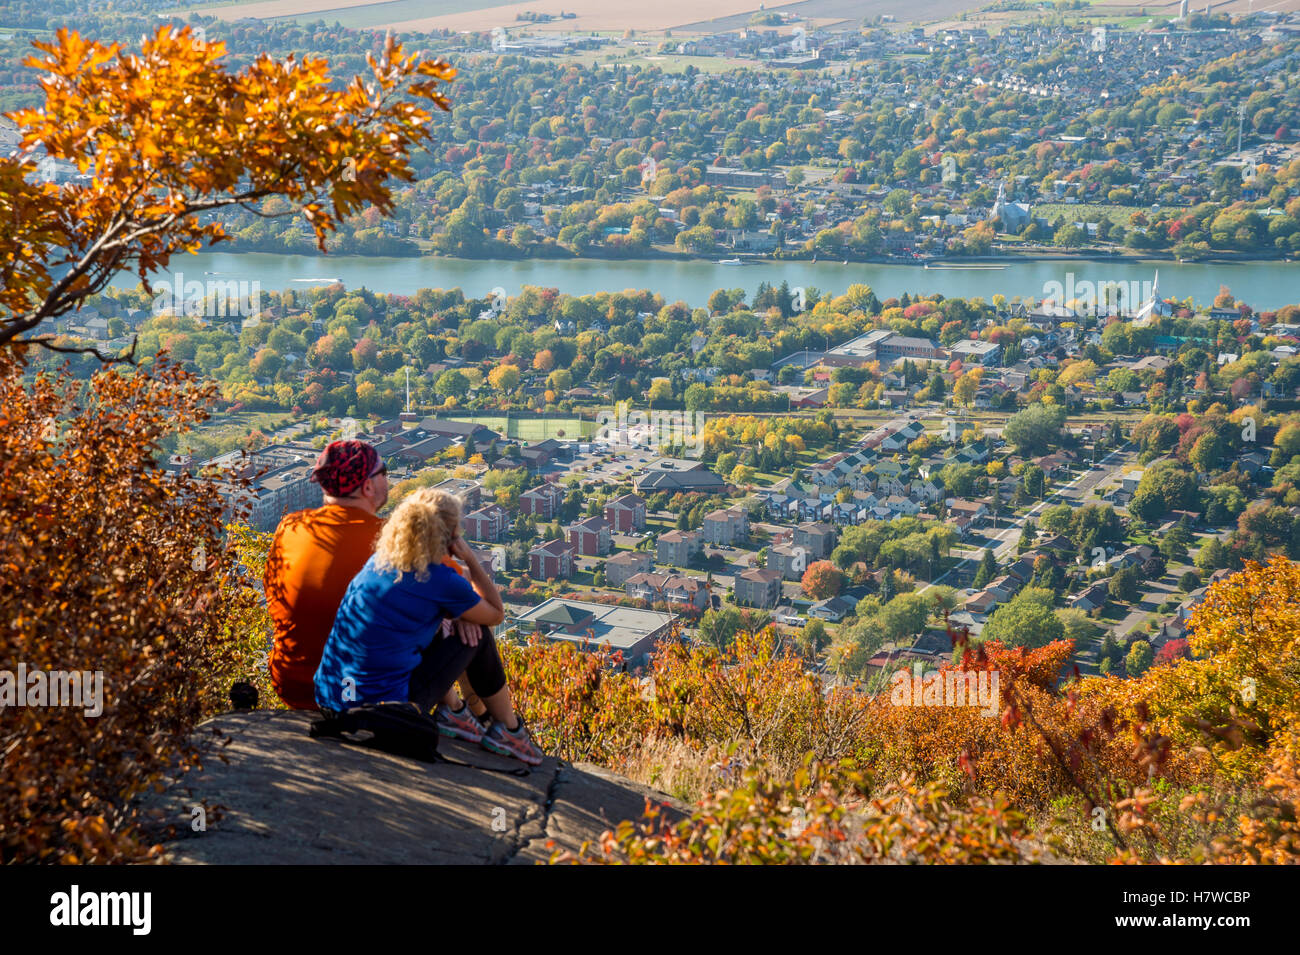 Trekkers at the top of Dieppe cliff on Mont Saint-Hilaire in Quebec - Stock Image